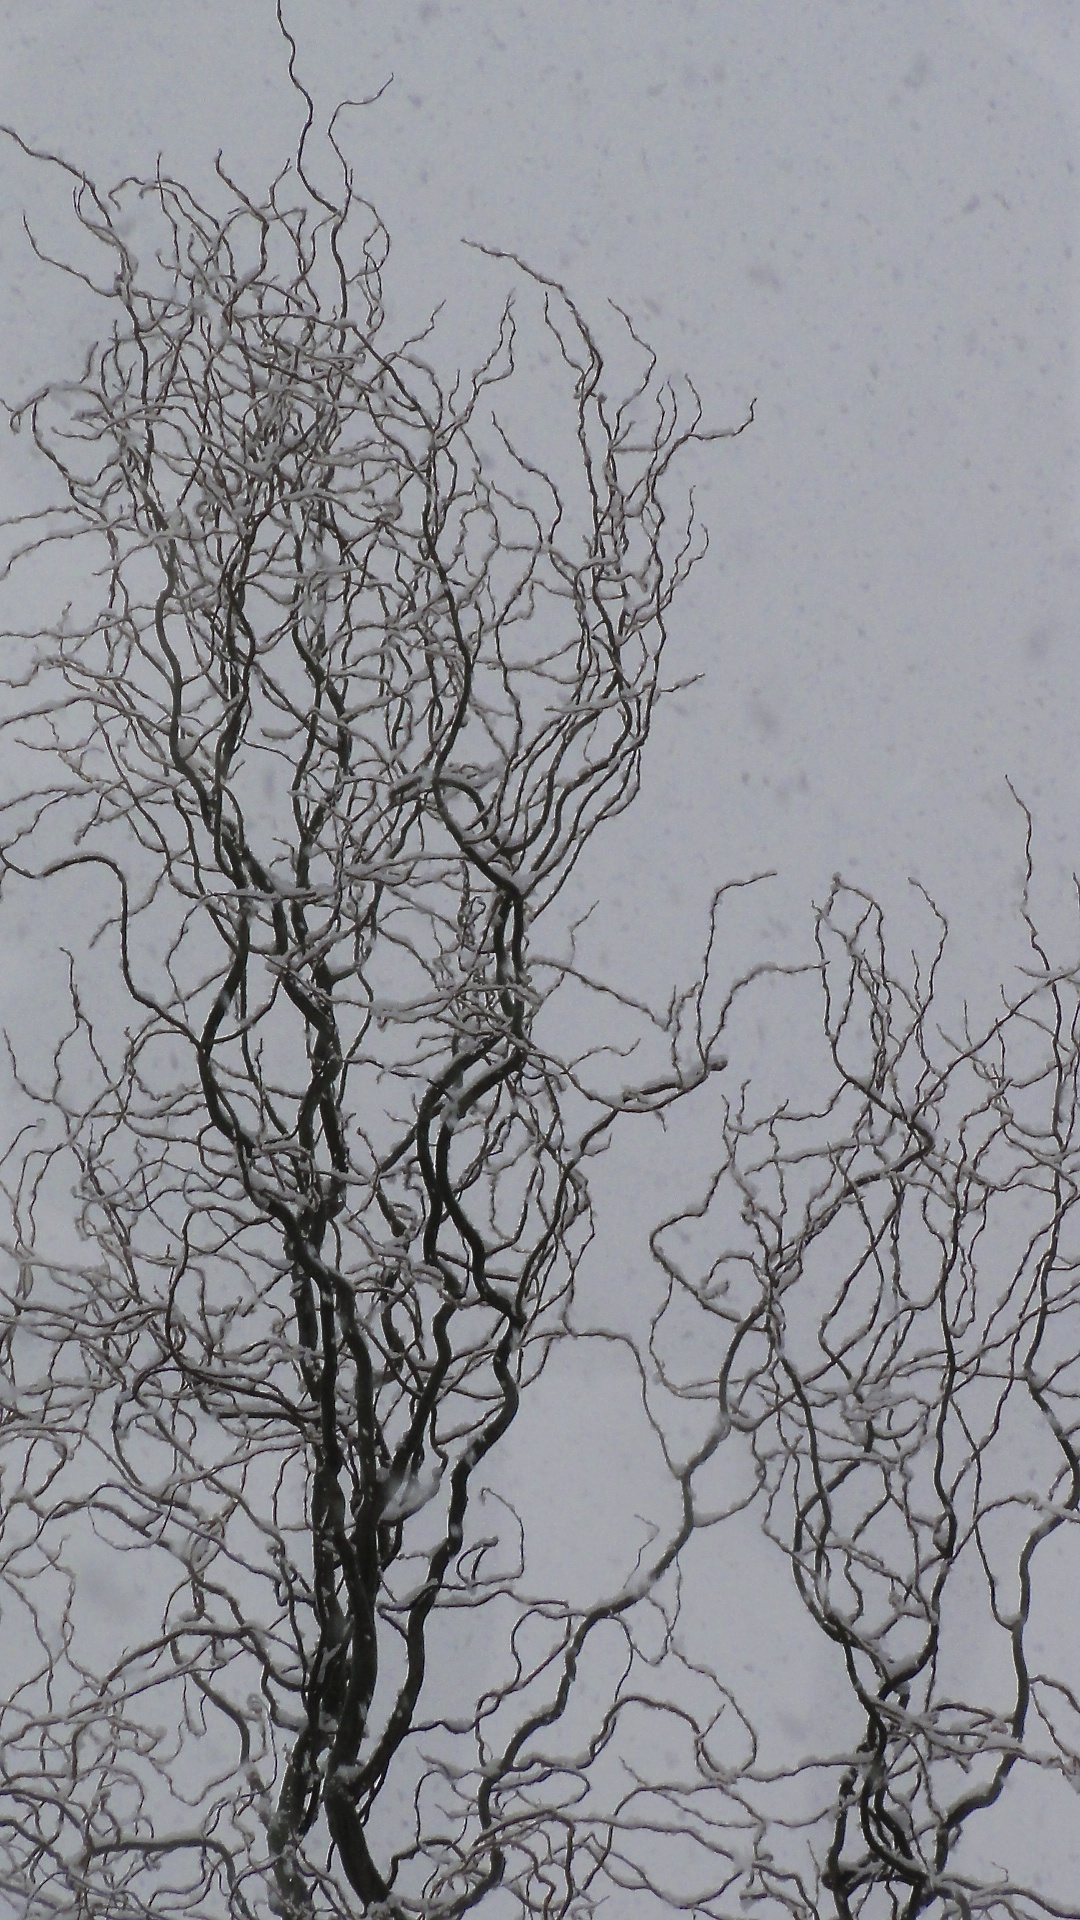 My corkscrew willow refuses to weep, reaches high to catch the snowflakes.